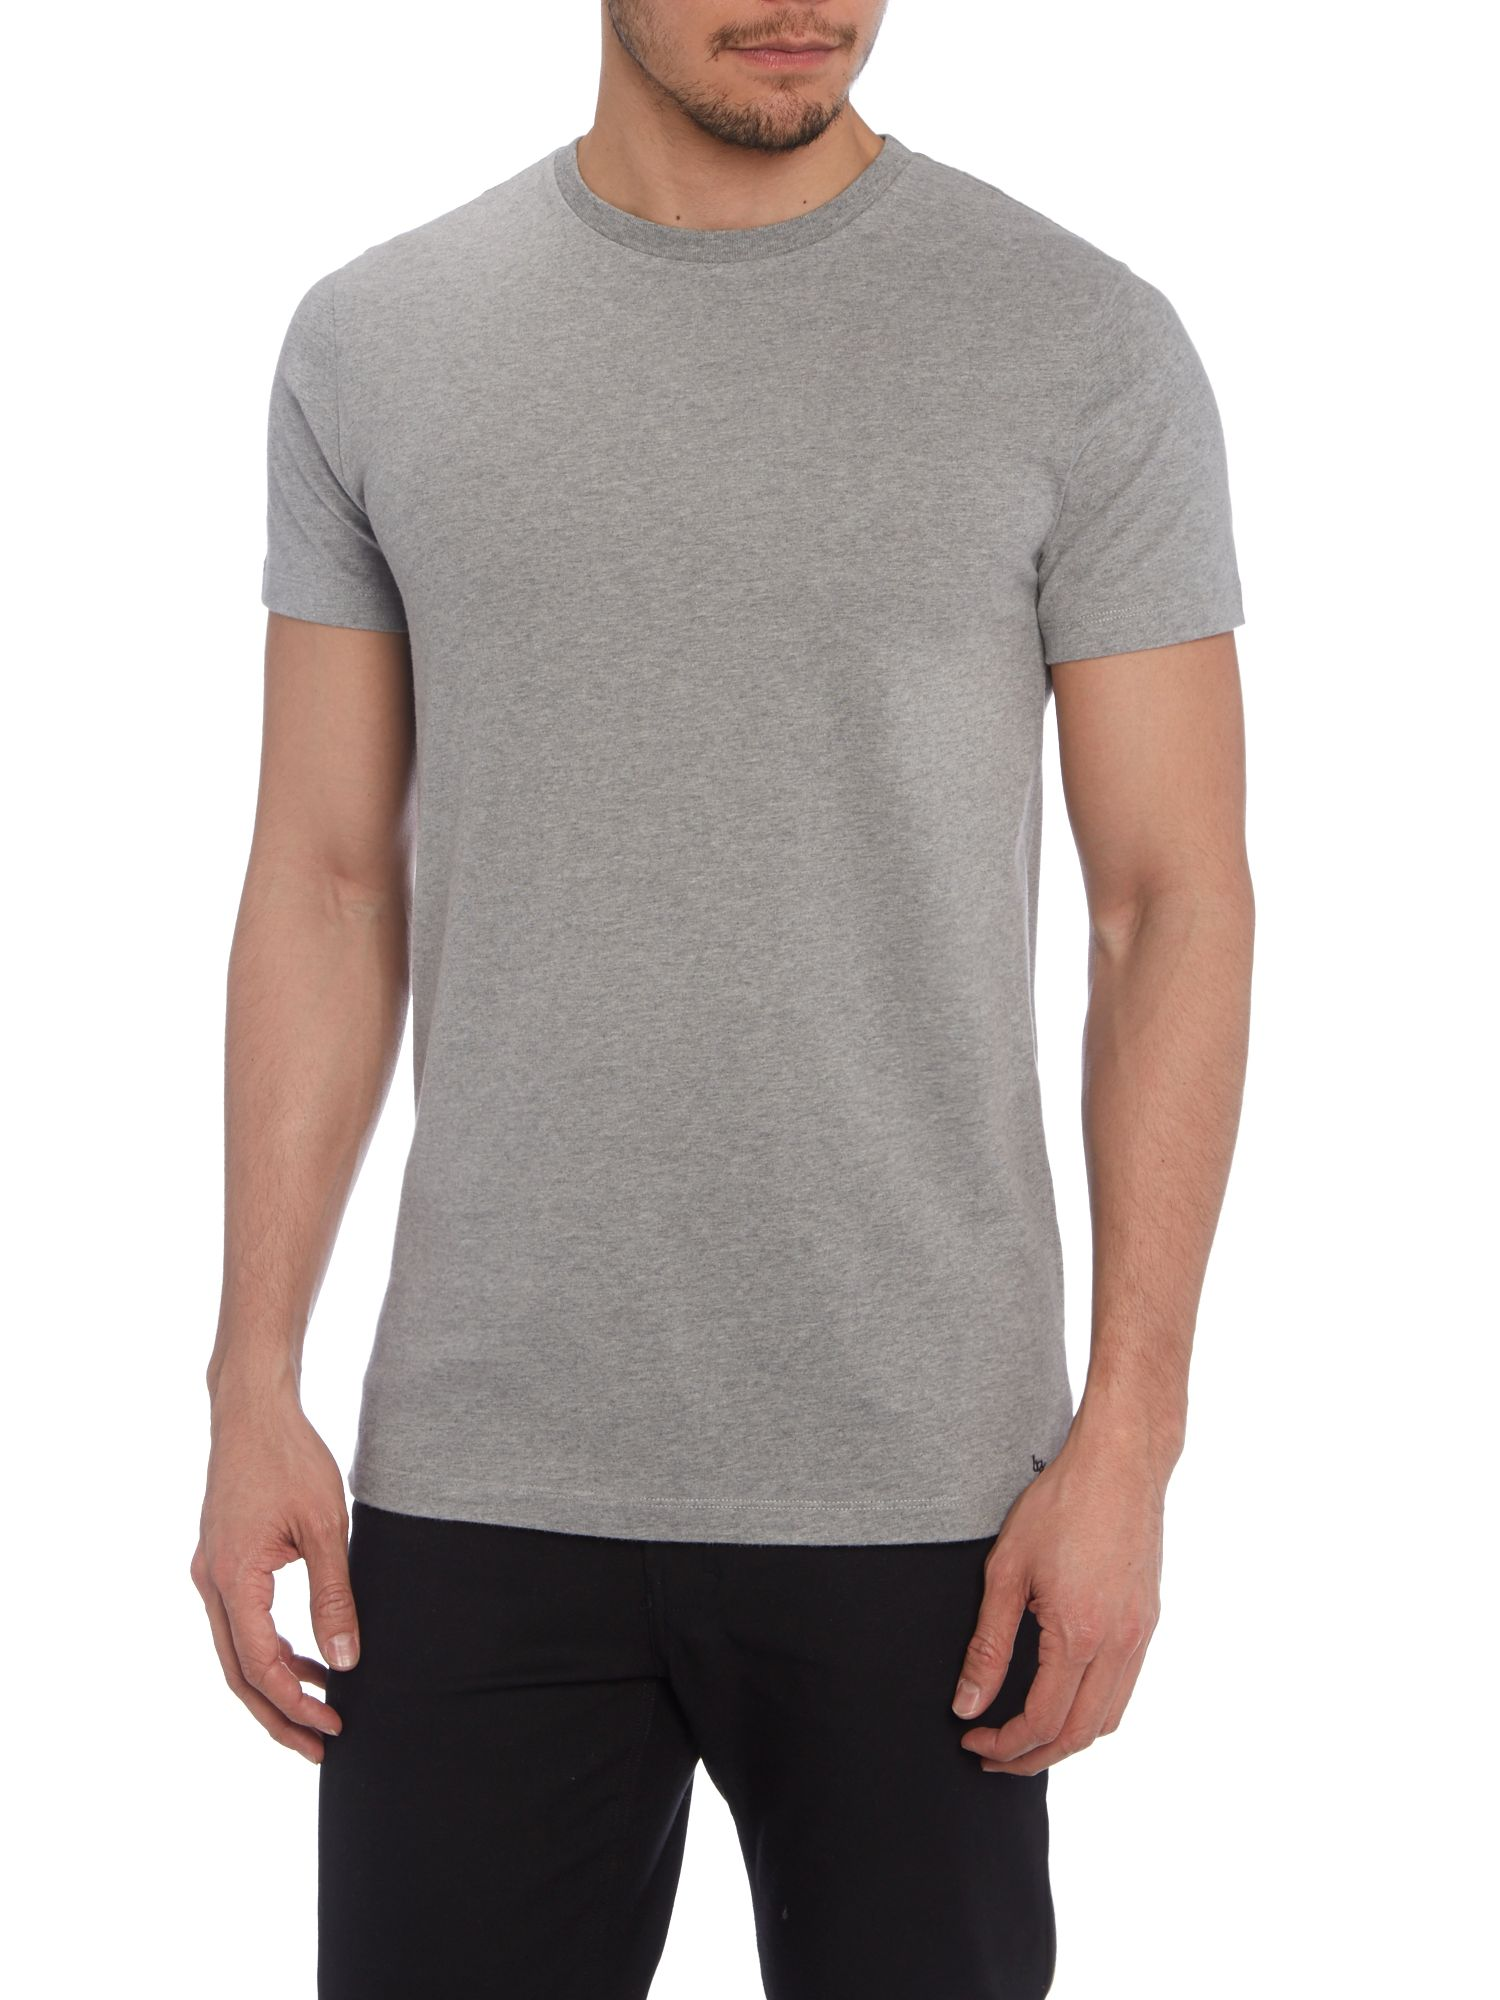 Relaxed fit cotton crew neck